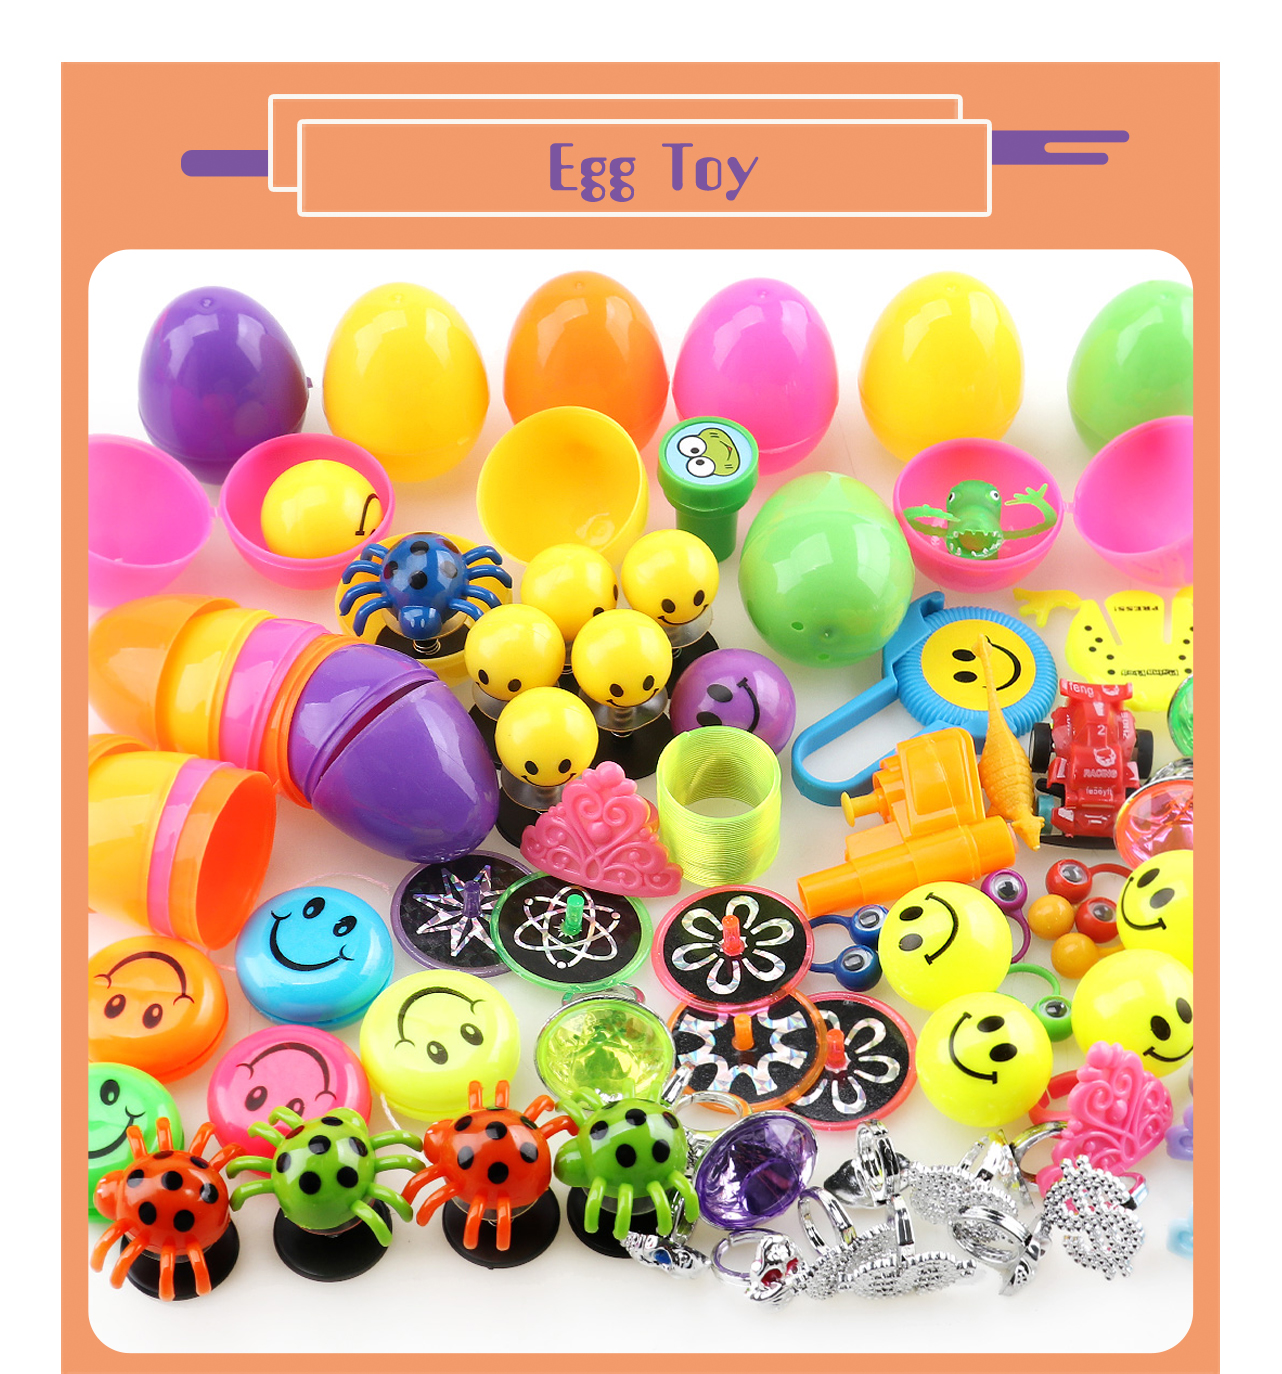 Cooperative Novelty Products Toy Colored Plastic Whistle Action Figure Funny Gadgets For Kids Toys Beauty Gift Joke Toys & Hobbies